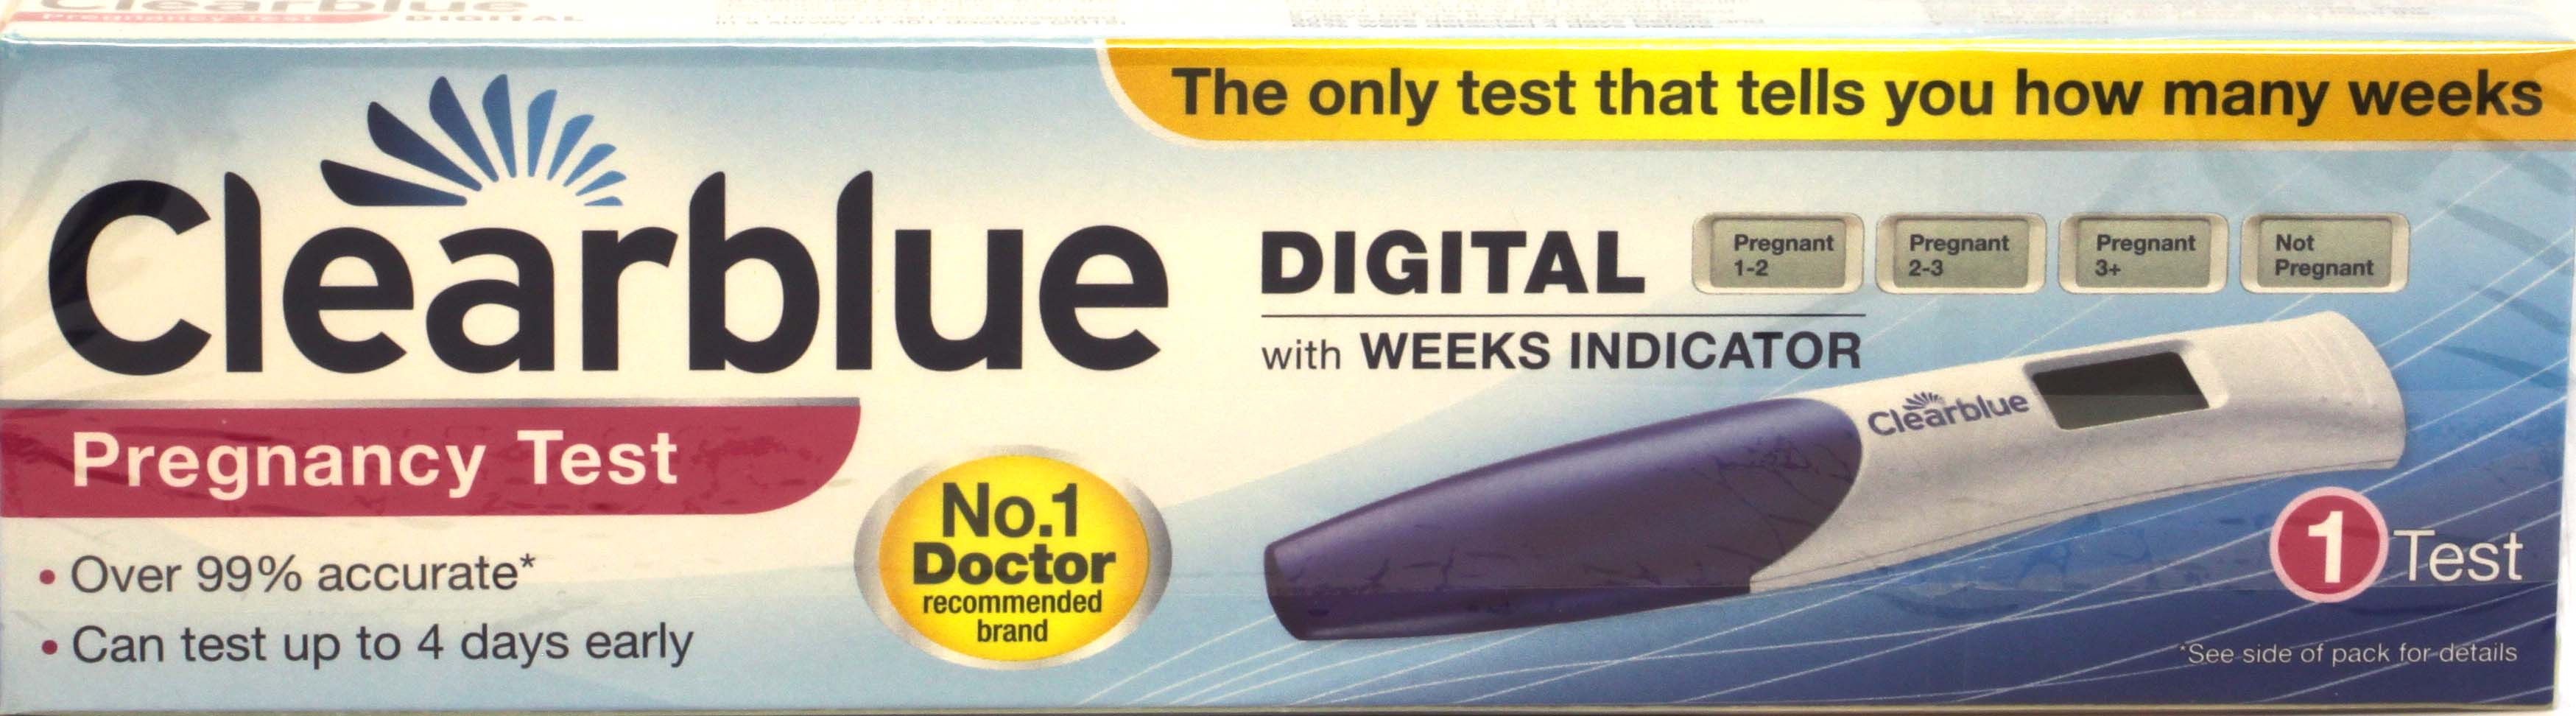 Clearblue  Digital Pregnancy Test 1